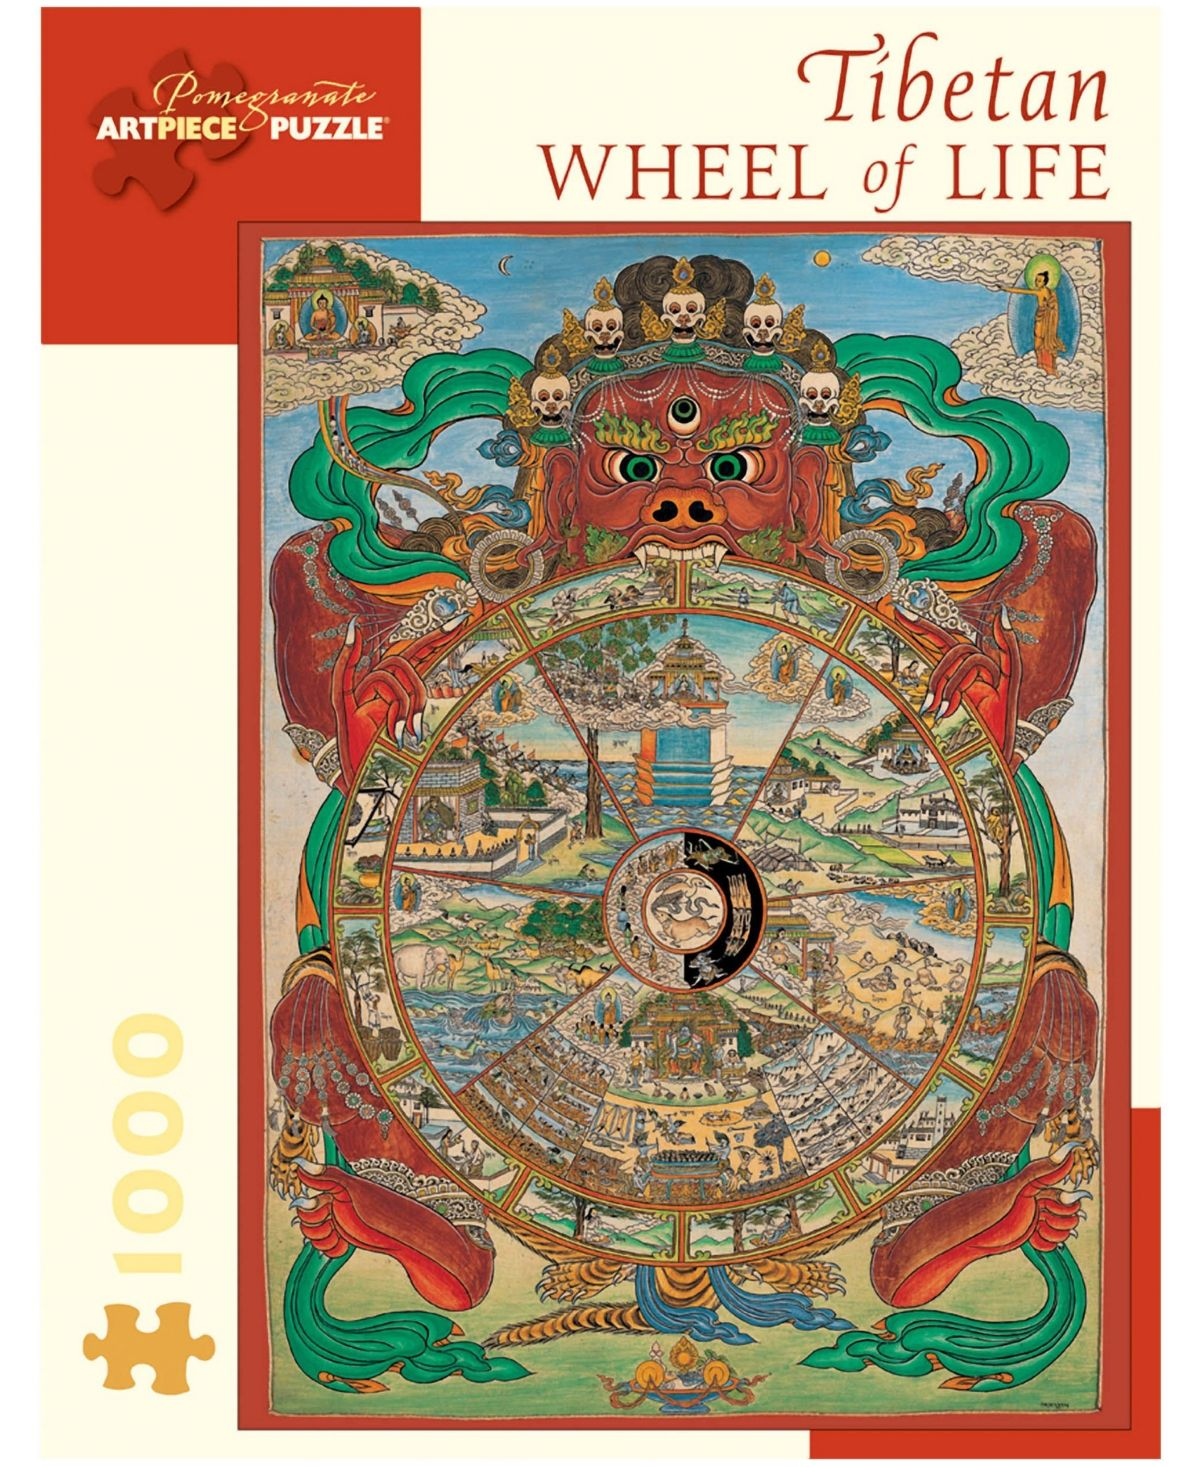 Tibetan Wheel of Life Puzzle 1000 Pieces (With images